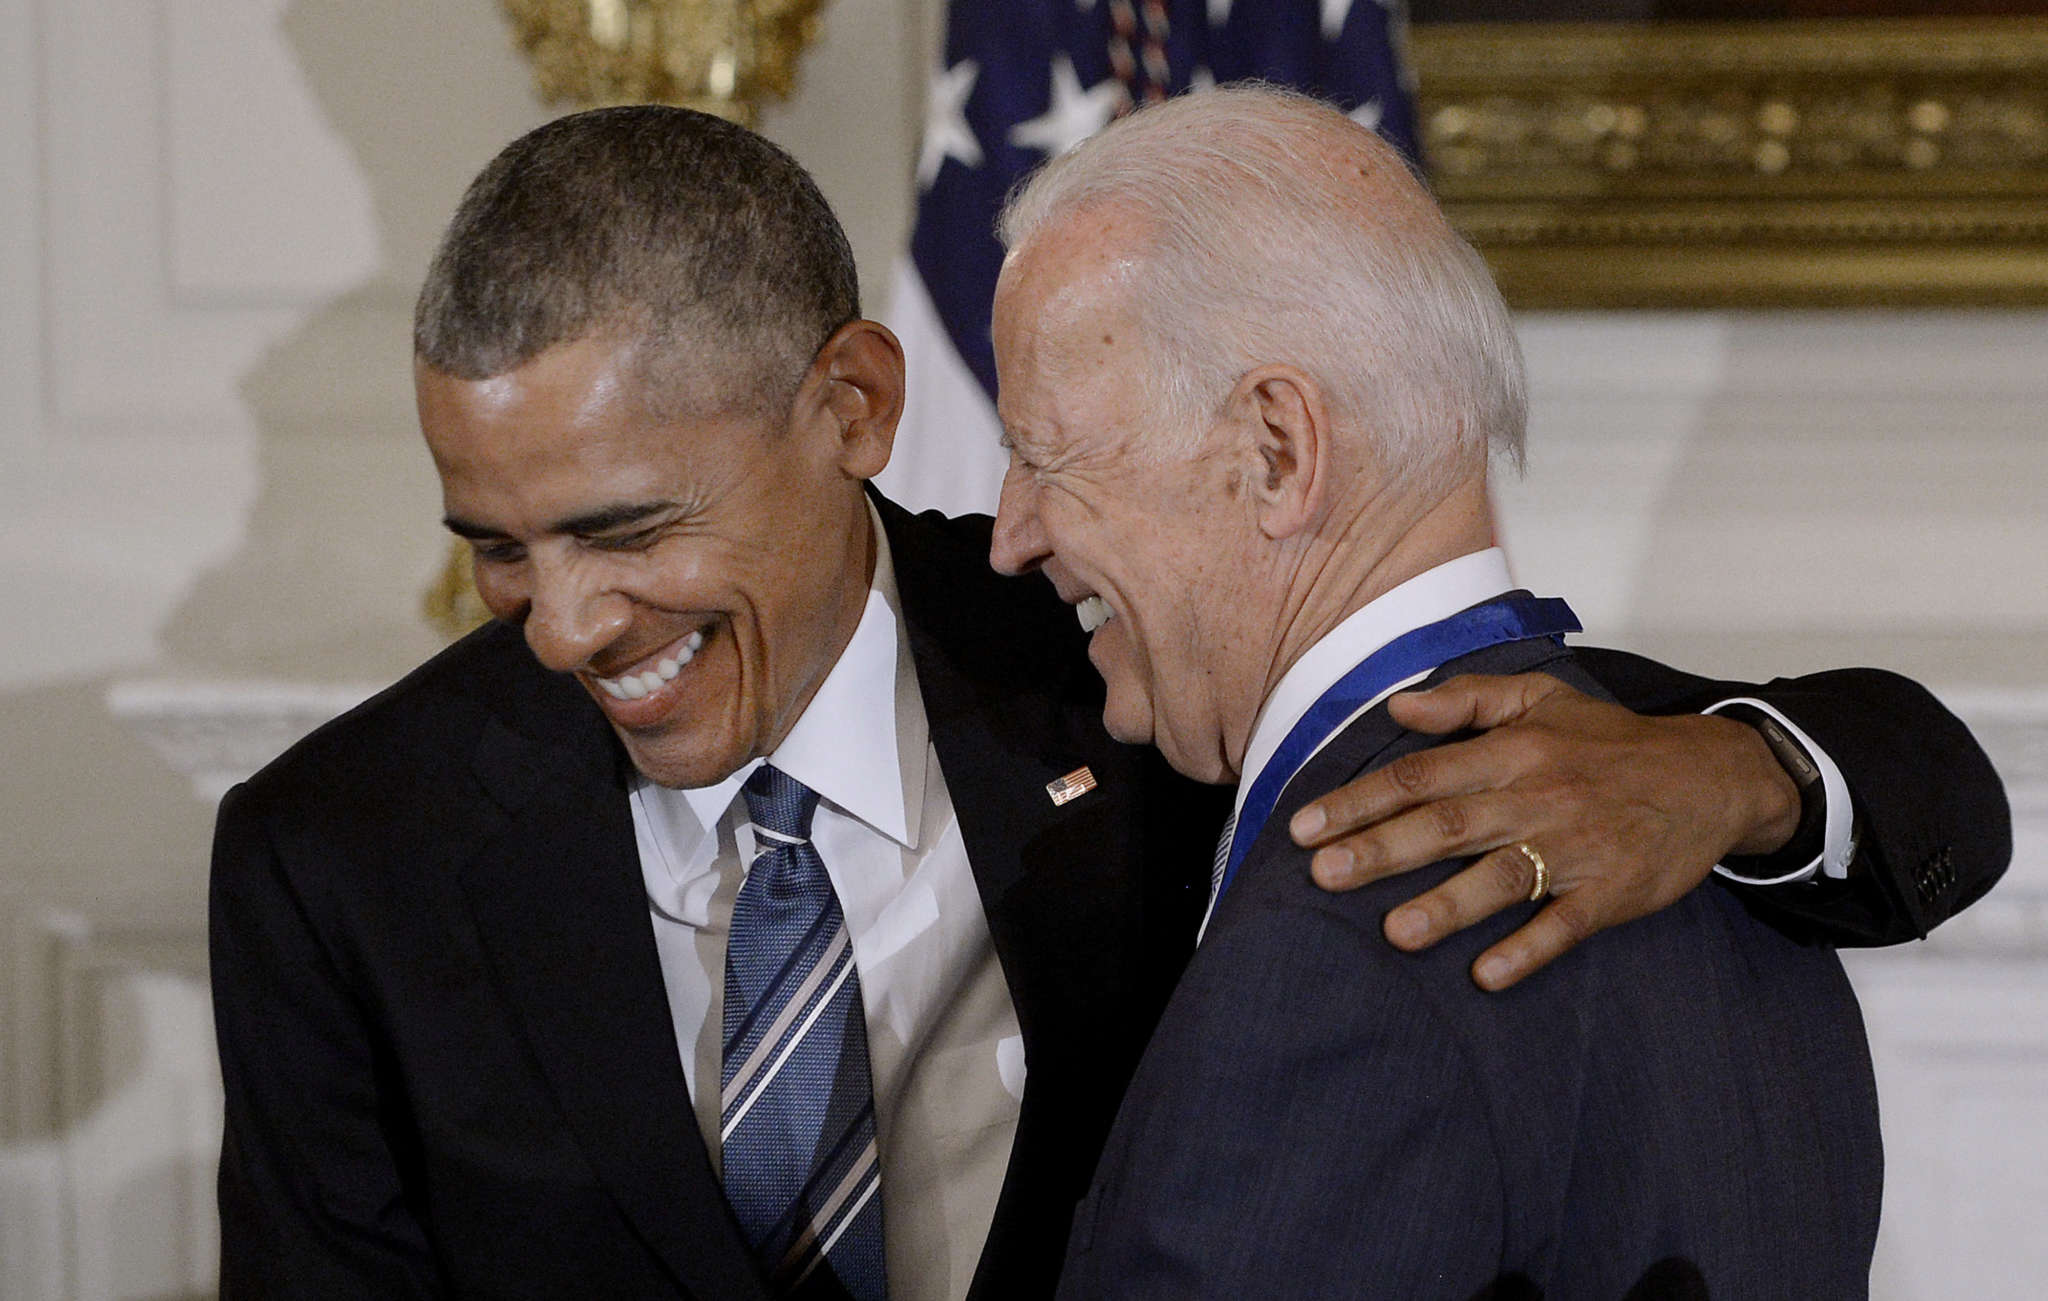 barack-obama-slams-donald-trumps-shambolic-government-and-encourages-people-to-vote-for-joe-biden